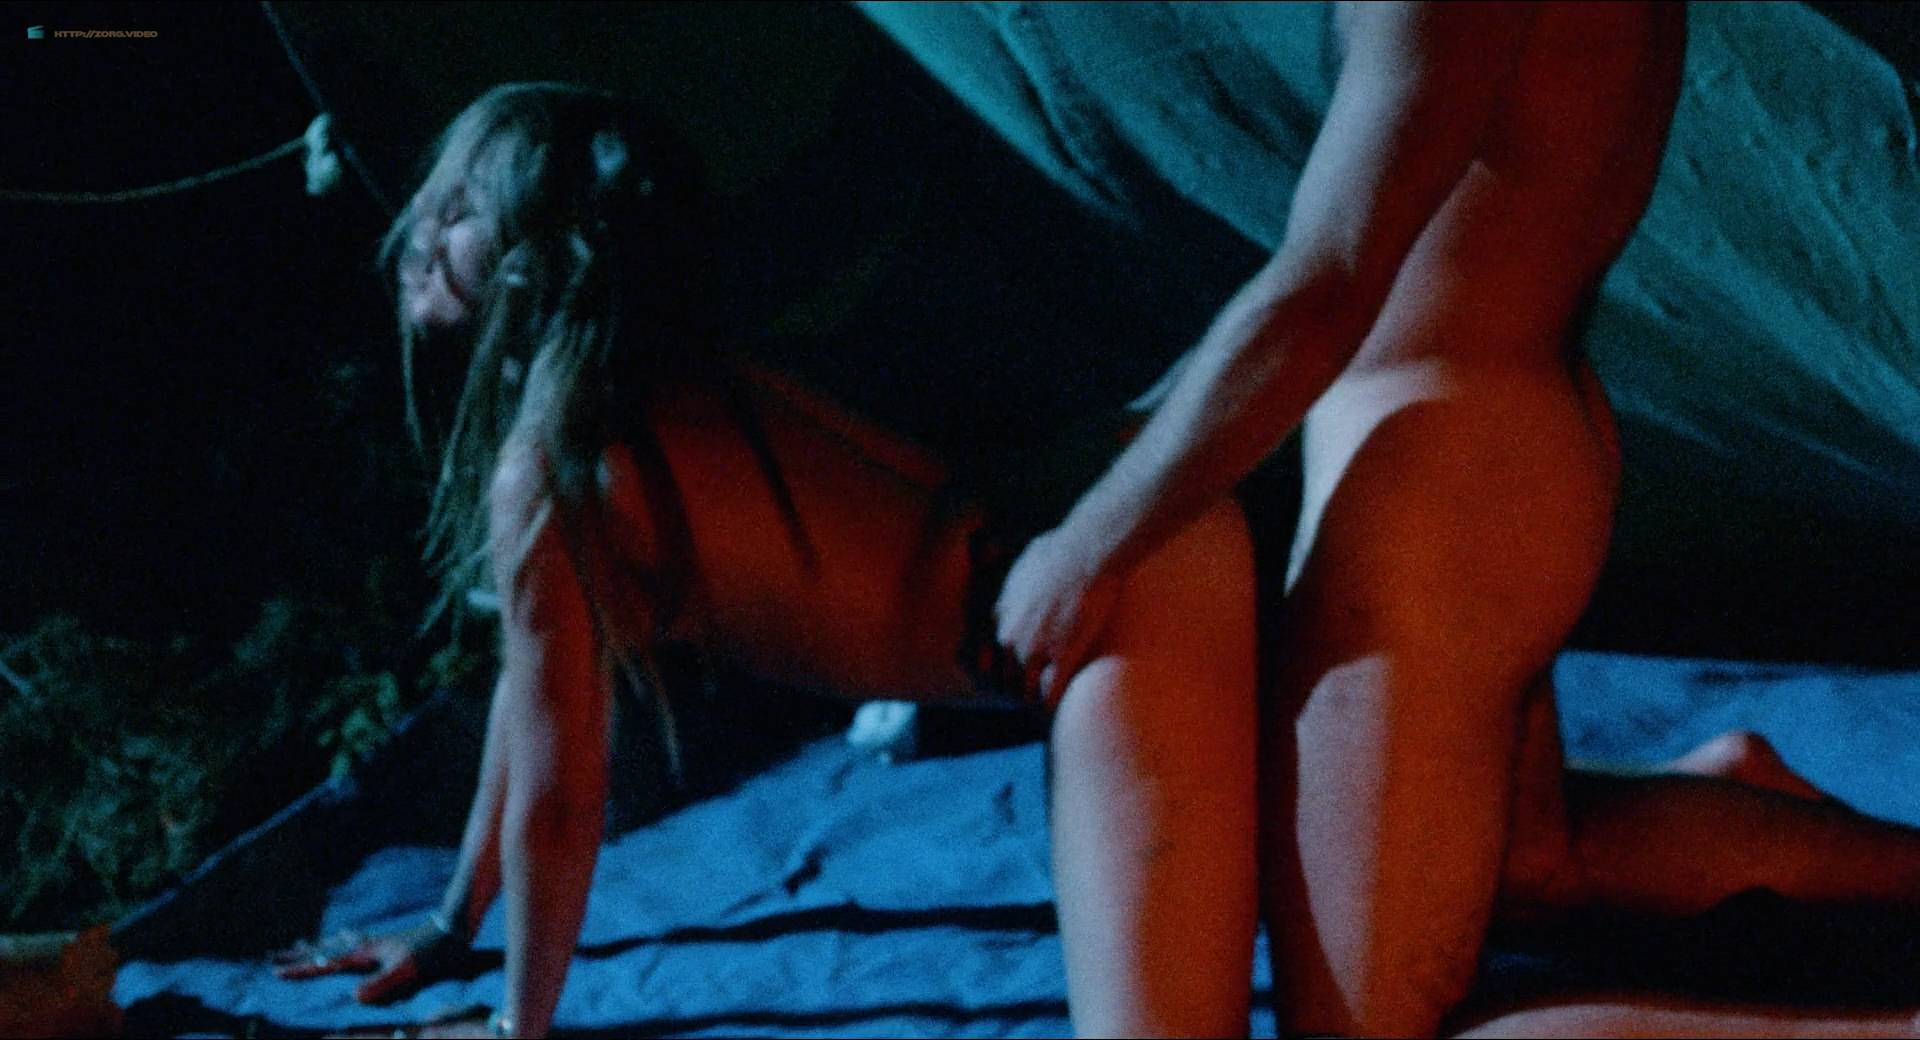 Margie Lanier nude bush sex Rene Bond and others all nude too - Fugitive Girls (1974) HD 1080p BluRay (10)